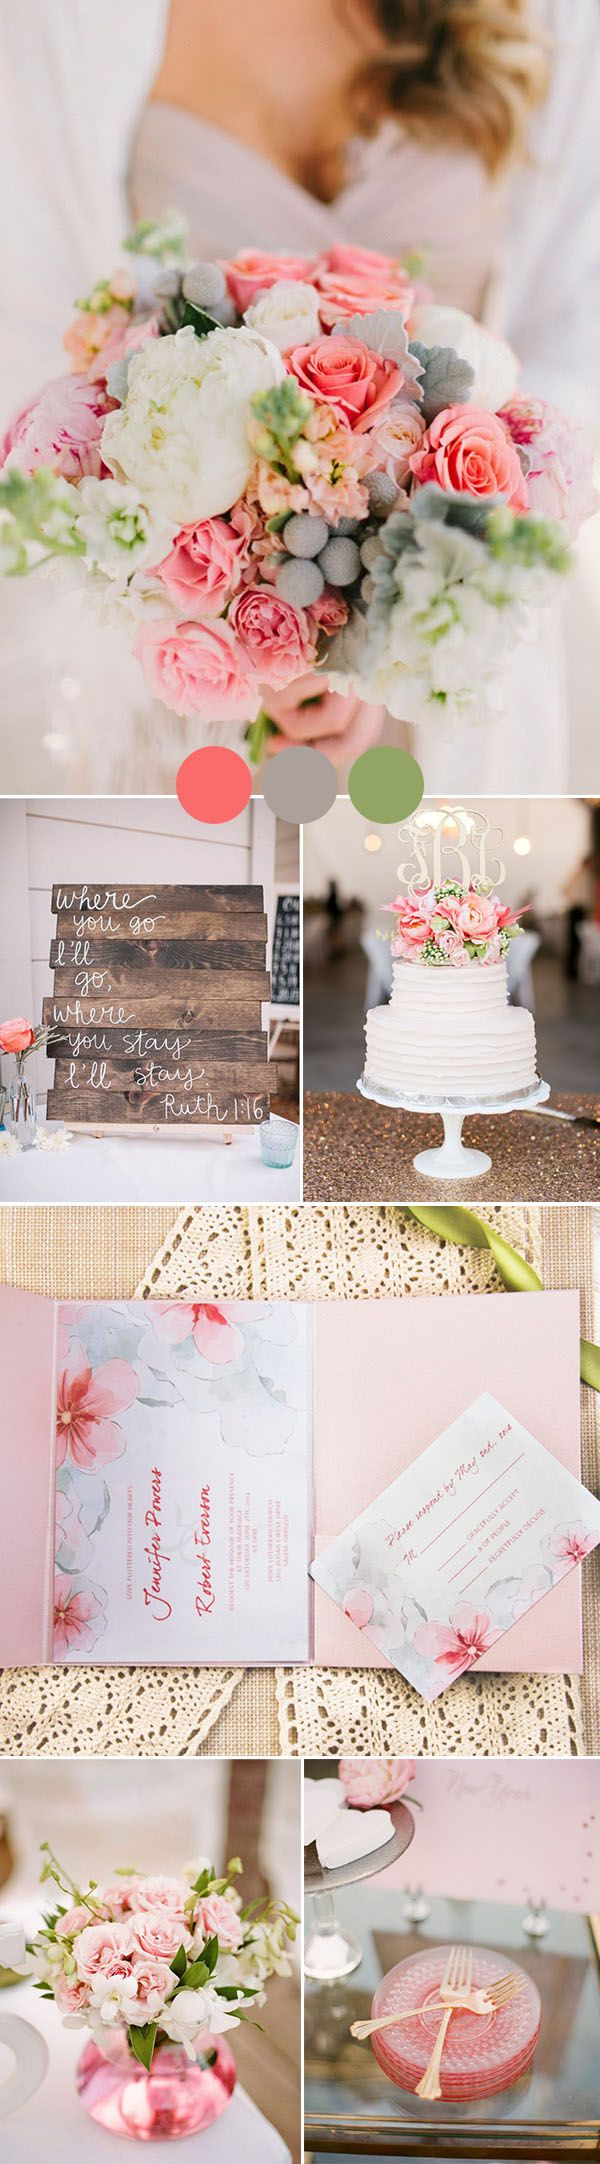 pink and gray country wedding colors wit gold glitter accents